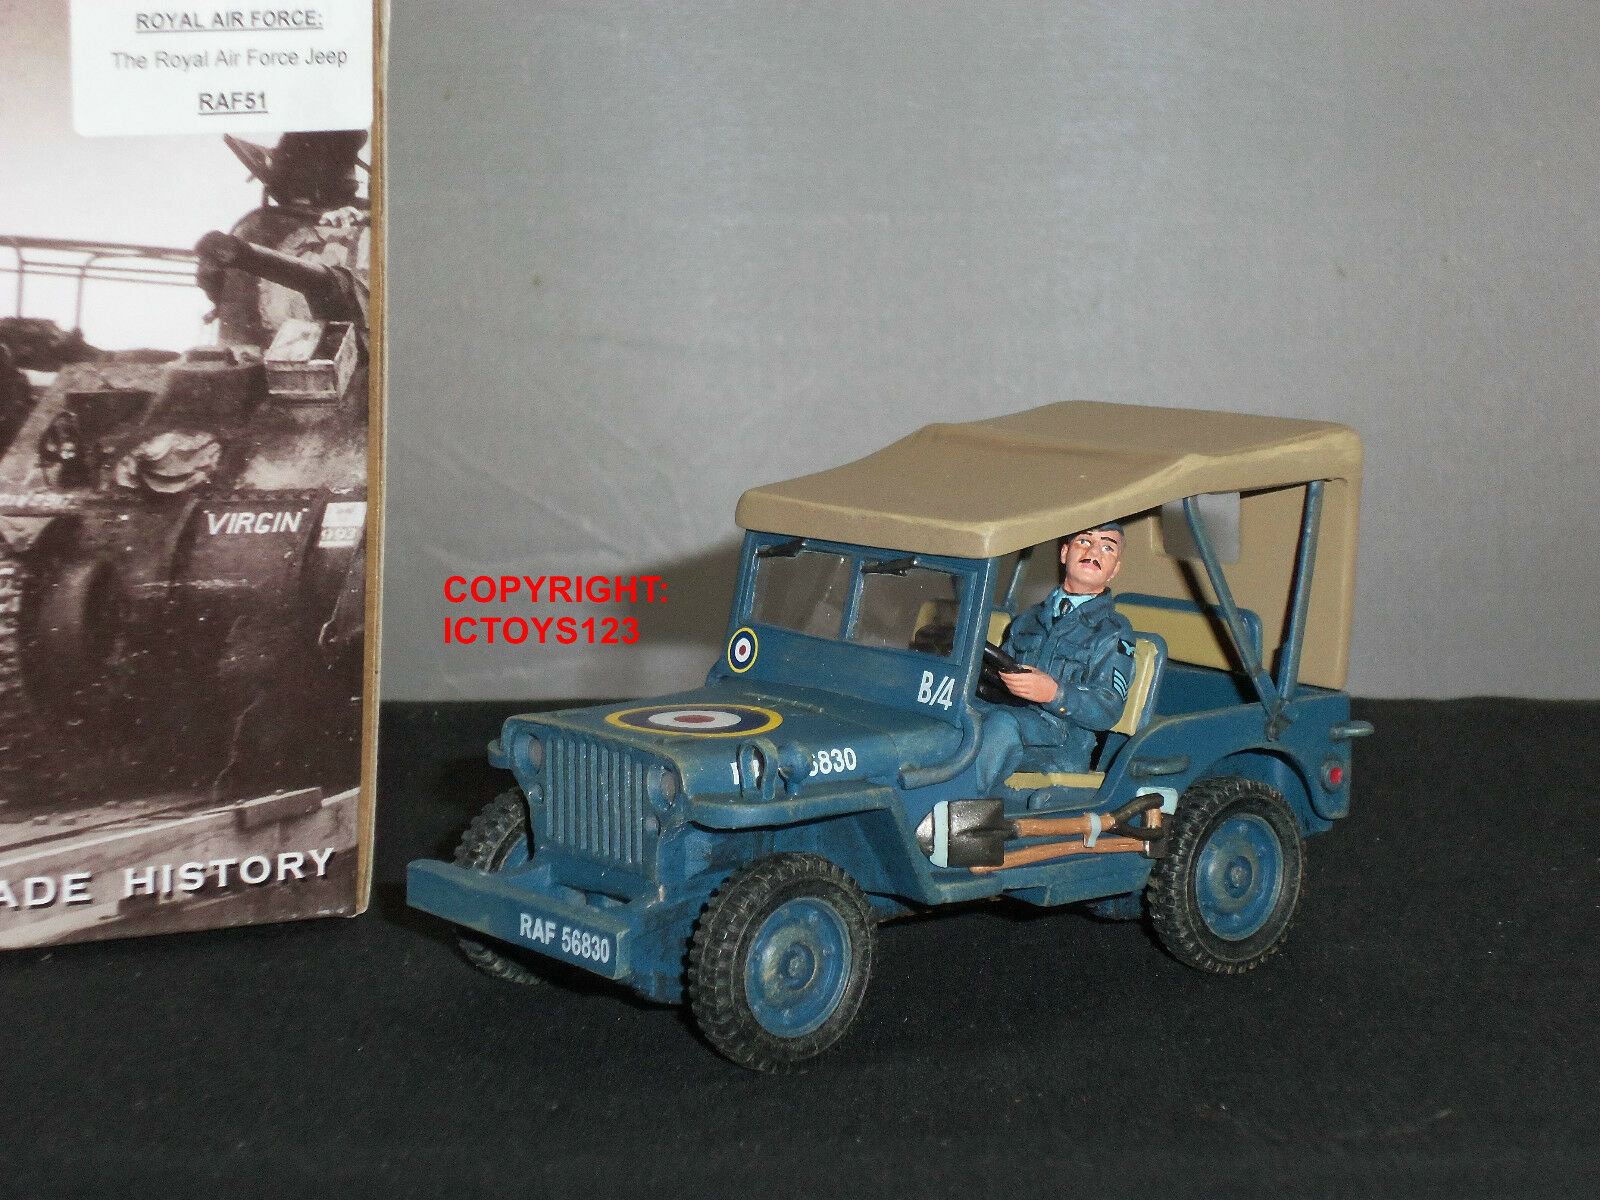 KING AND COUNTRY RAF51 ROYAL AIR FORCE RAF UNIVERSAL JEEP + DRIVER FIGURE SET